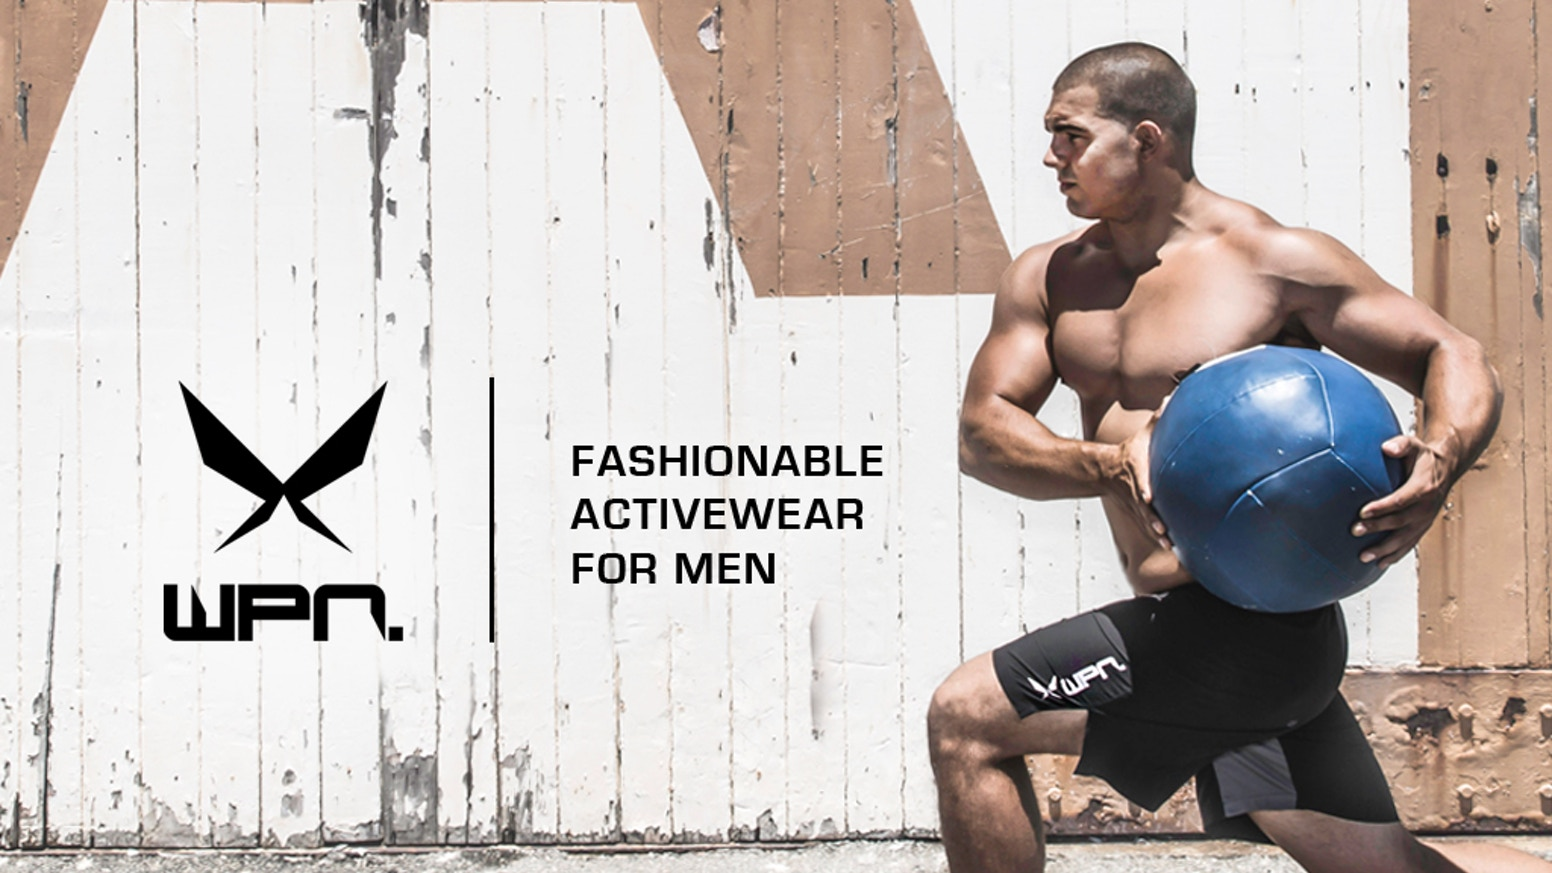 The ultimate activewear for men. Combining style, performance and comfort. The first Australian company to feature IceSkin™ technology